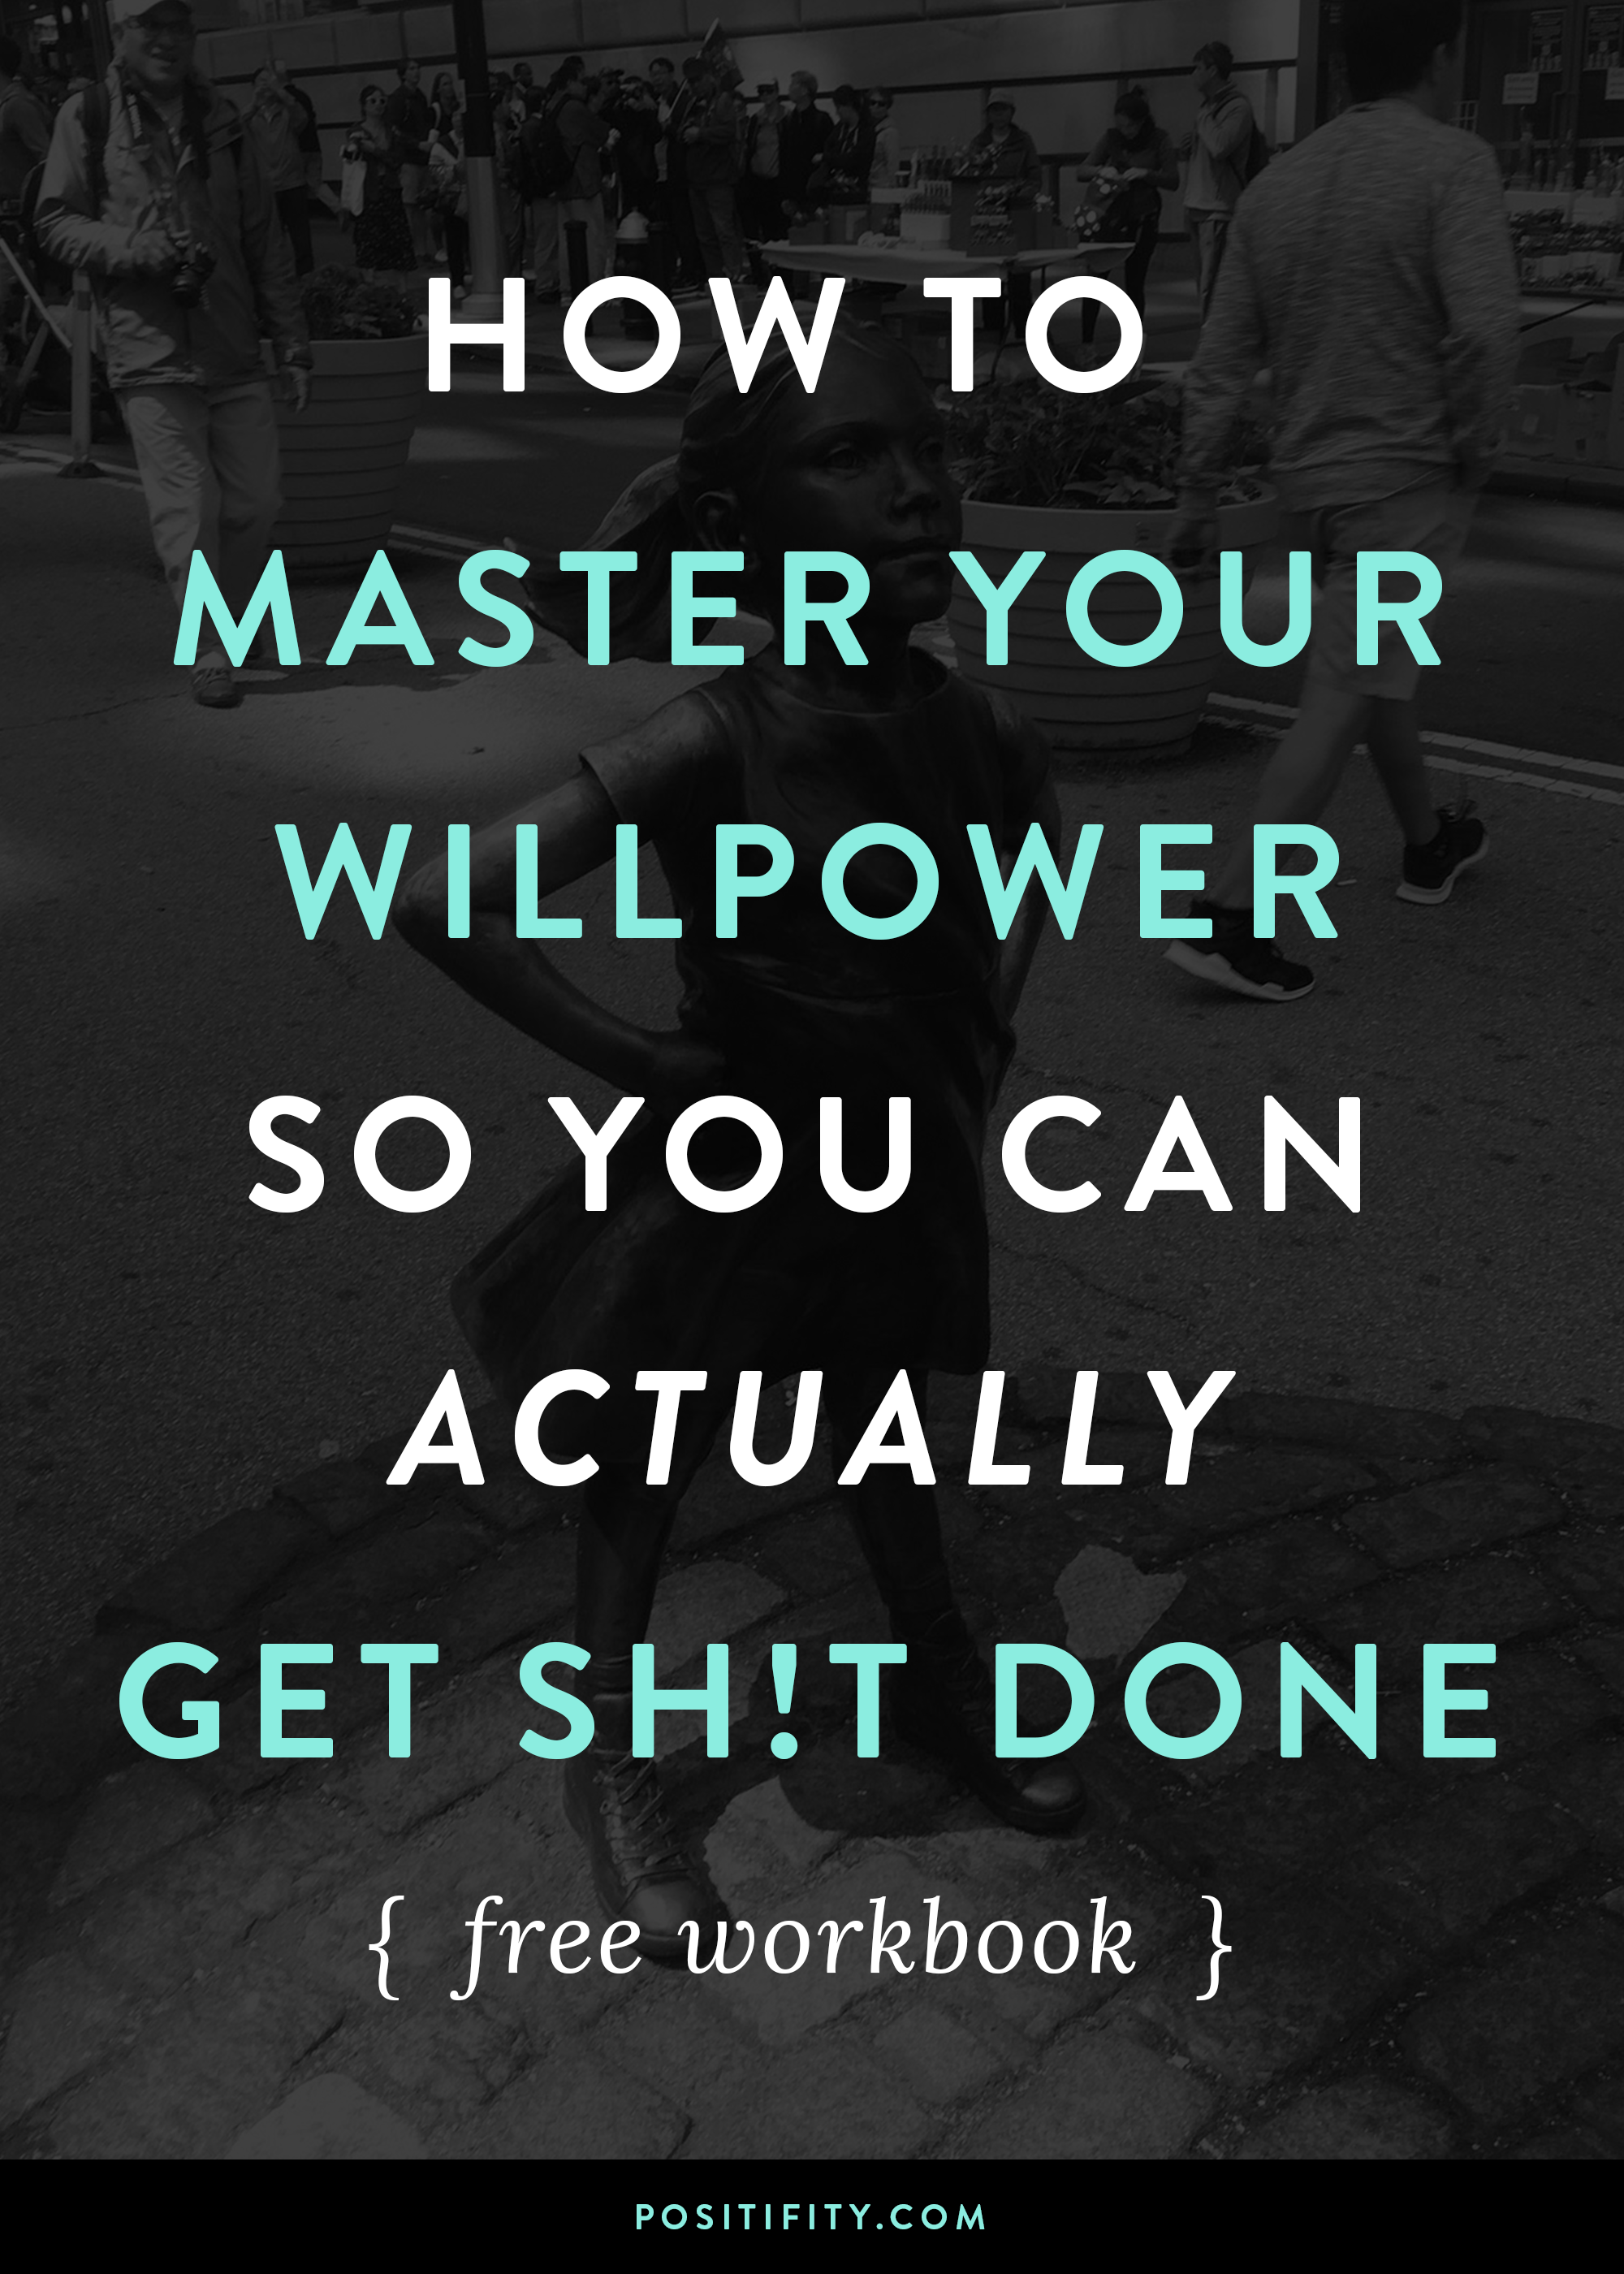 6 Steps To Becoming A Willpower Warrior Free Workbook